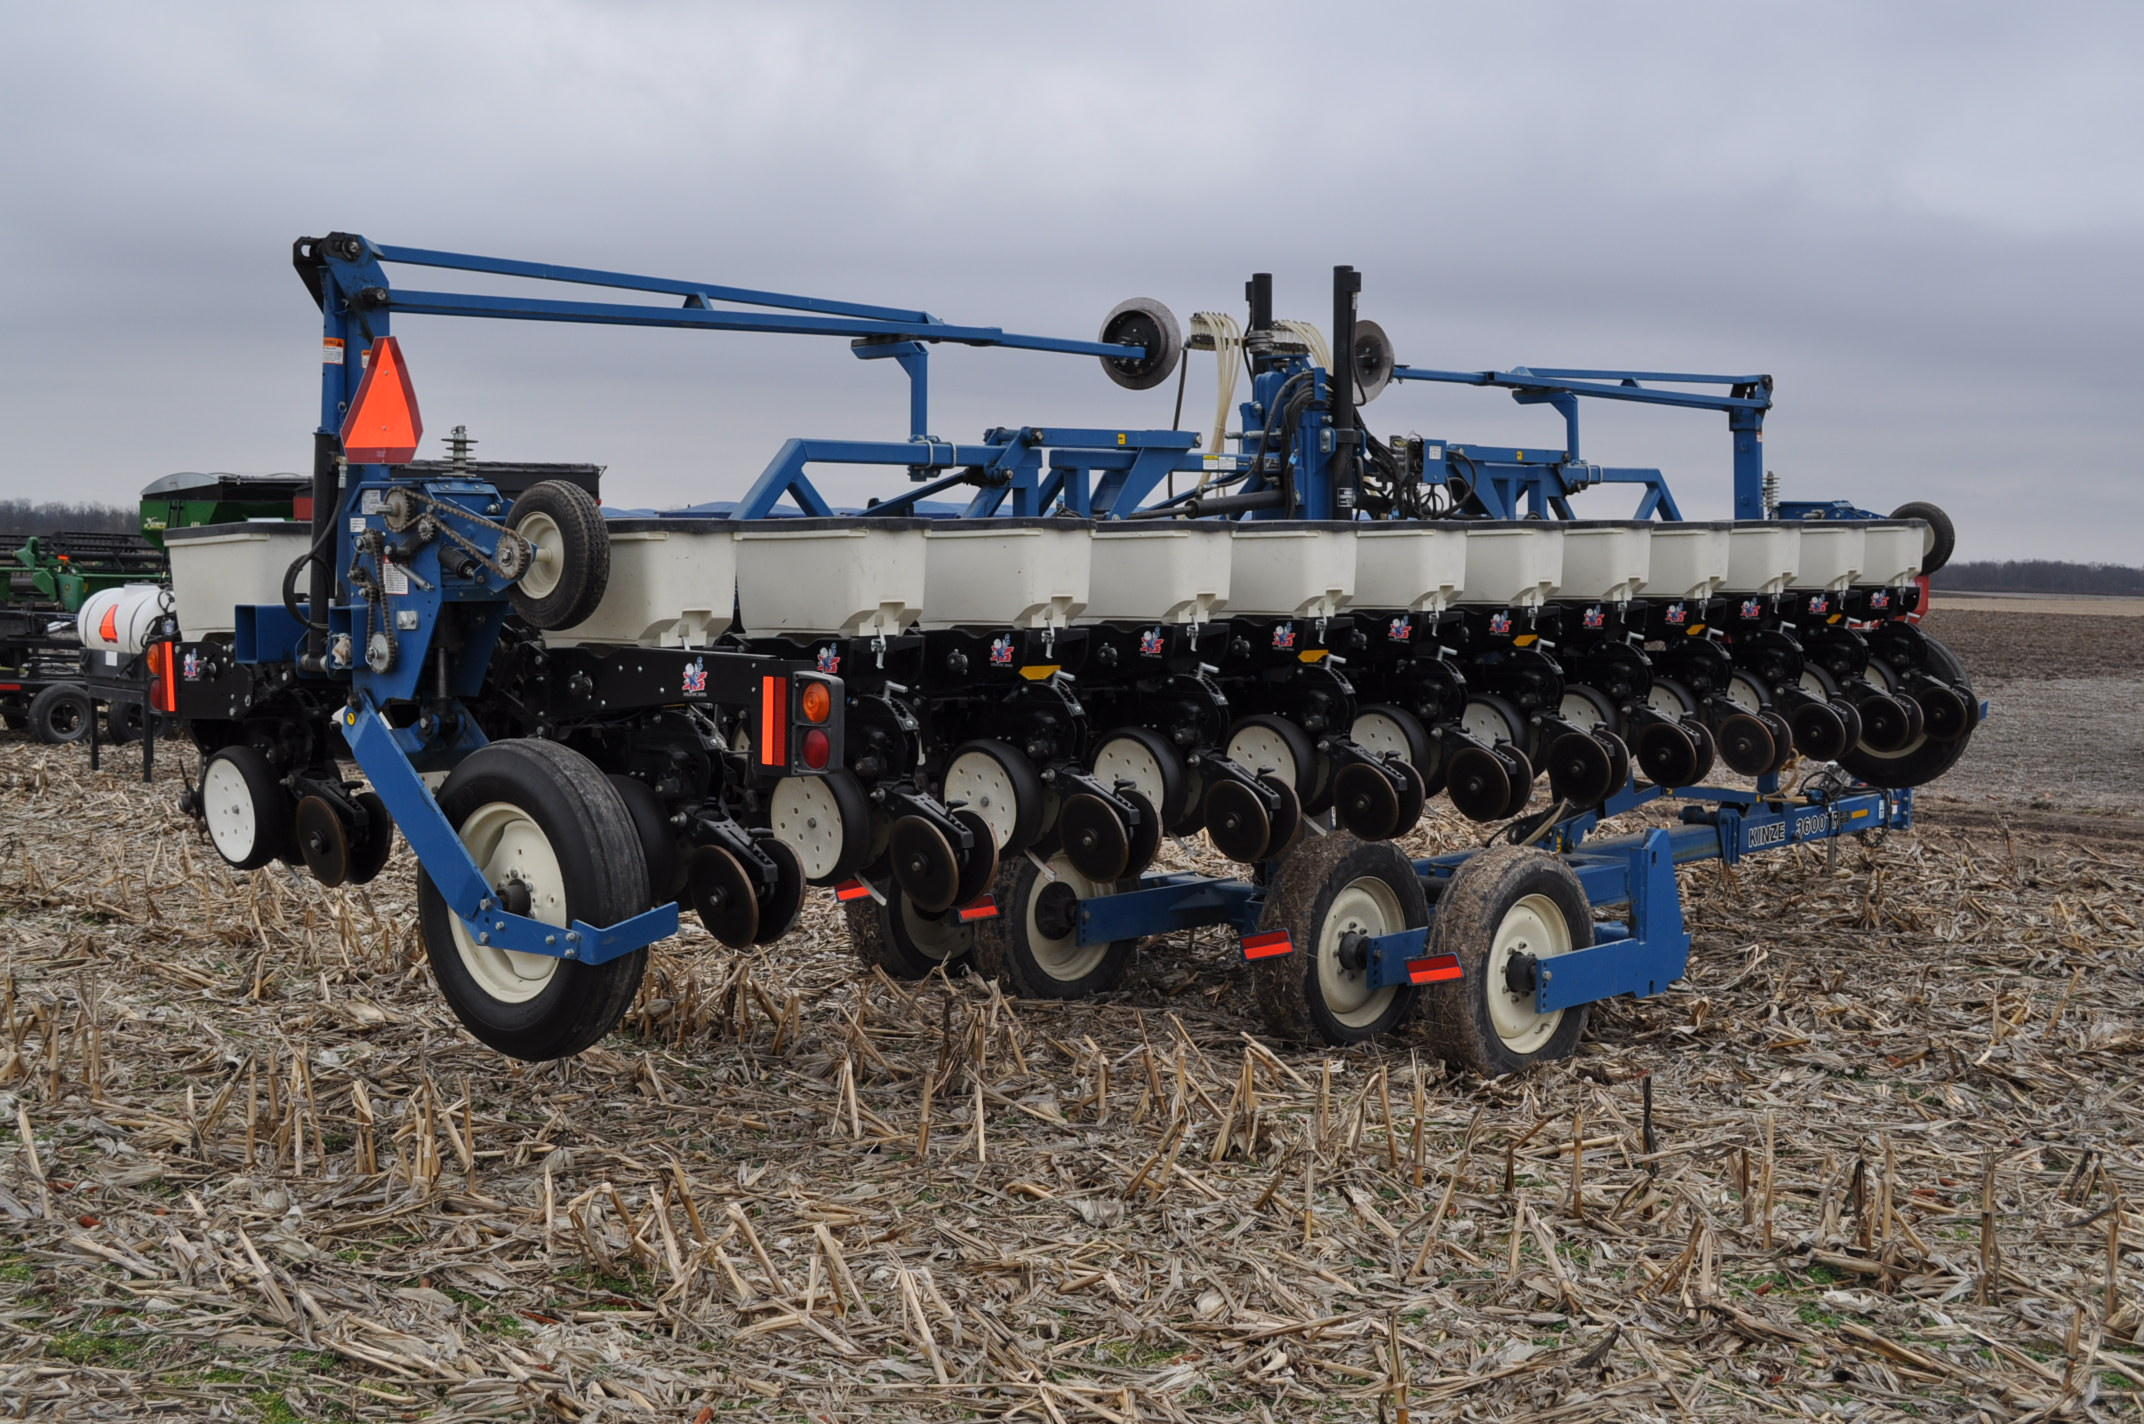 Kinze 3600TR planter, 12/24 twin row, Martin row cleaners, markers, finger pick up, cast closing - Image 4 of 20